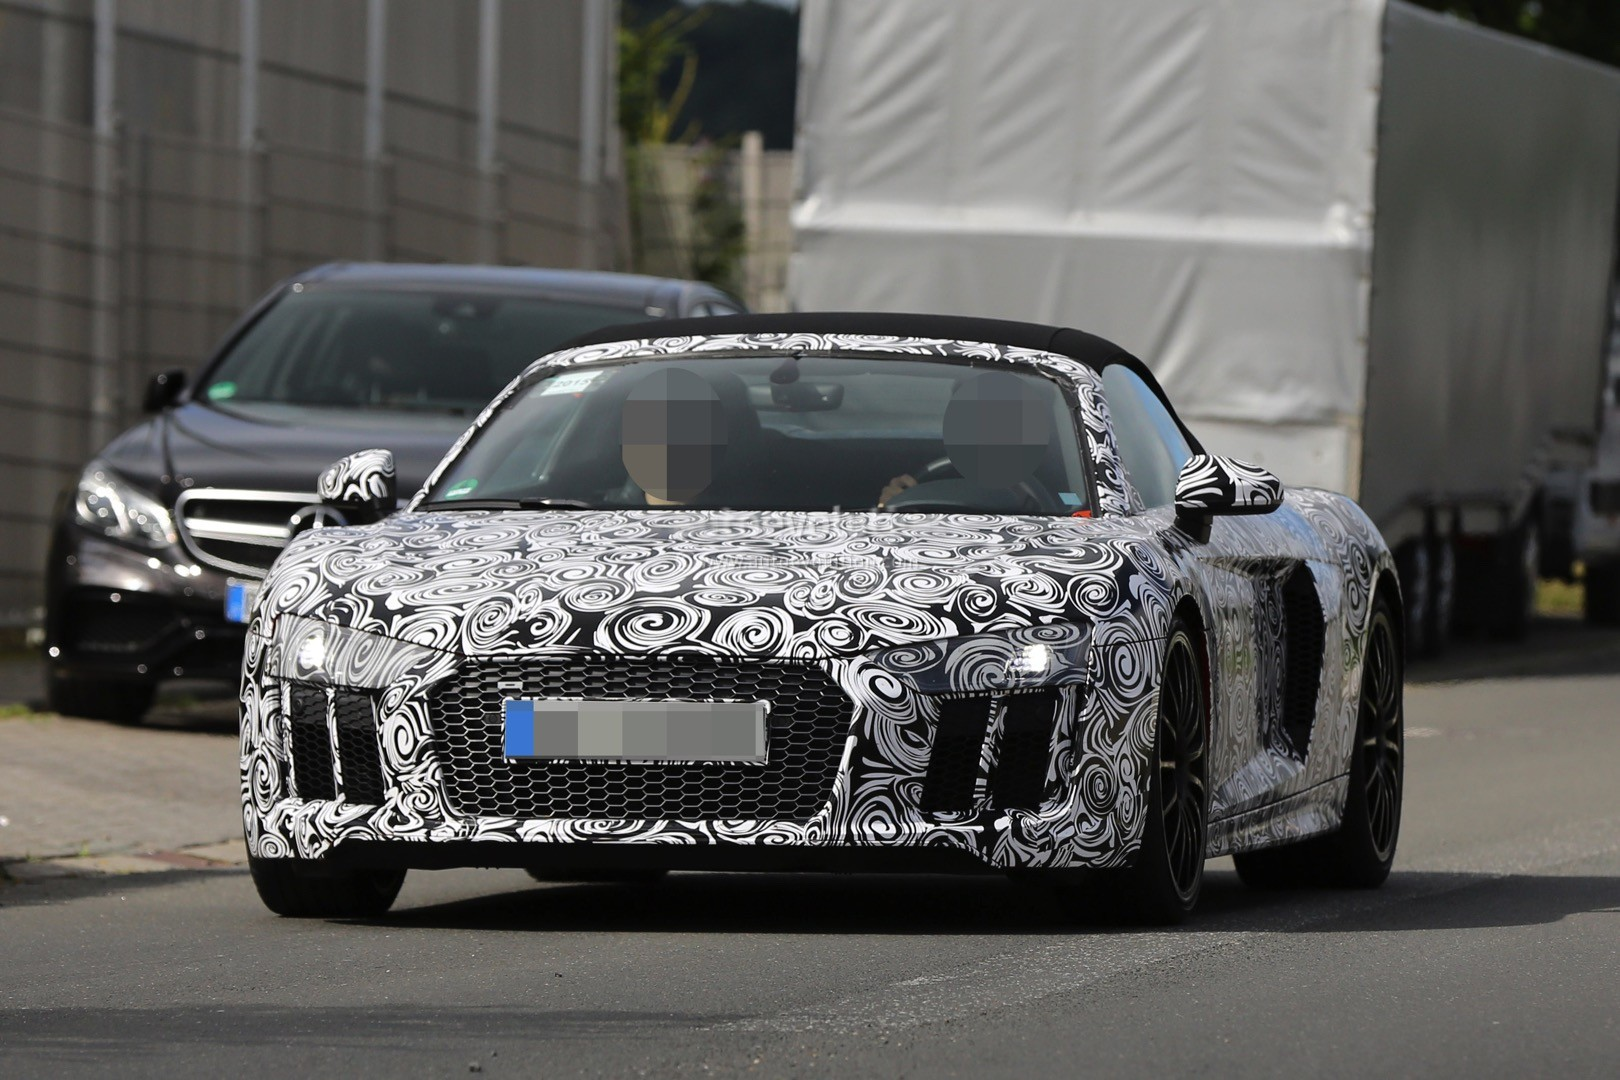 2017 audi r8 spyder spied again could challenge turbo s cabrio autoevolution. Black Bedroom Furniture Sets. Home Design Ideas